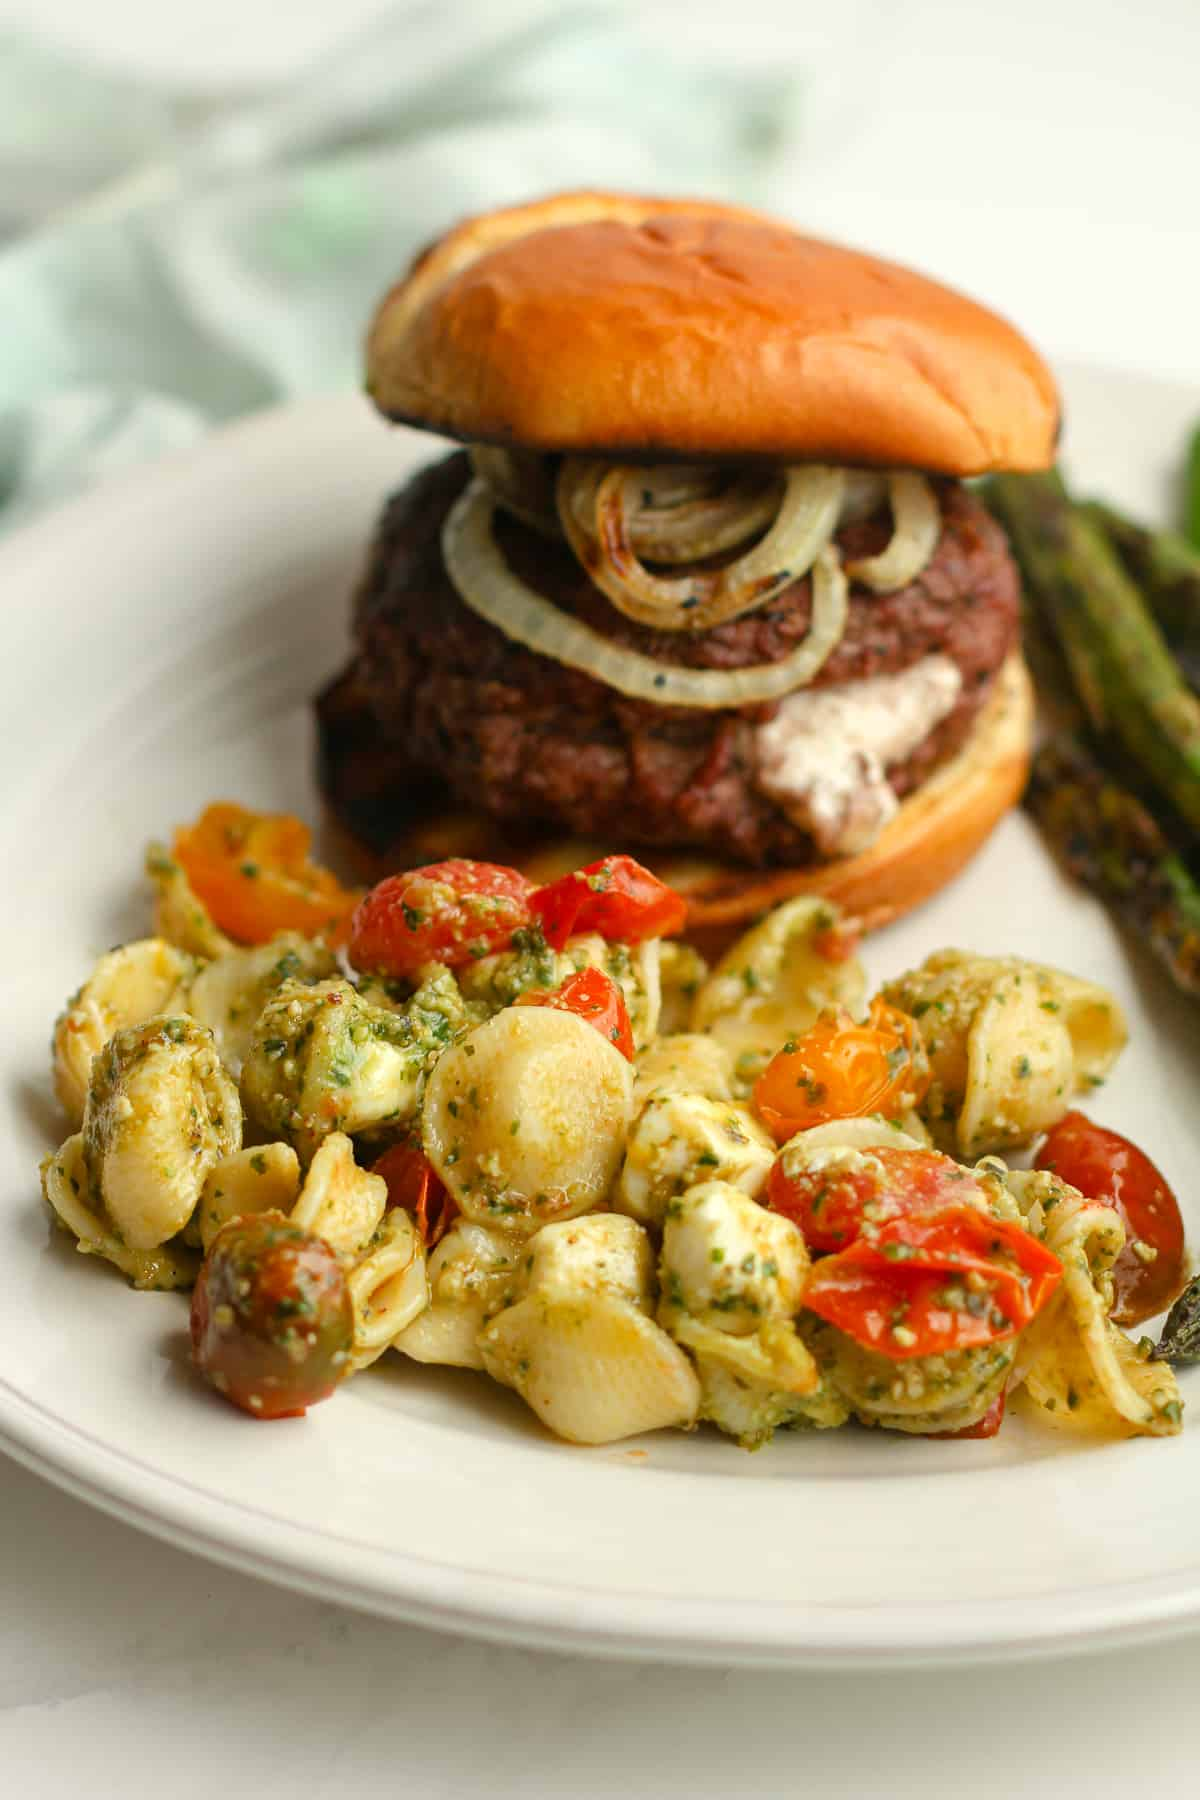 Side shot of a plate of pasta salad with a burger.